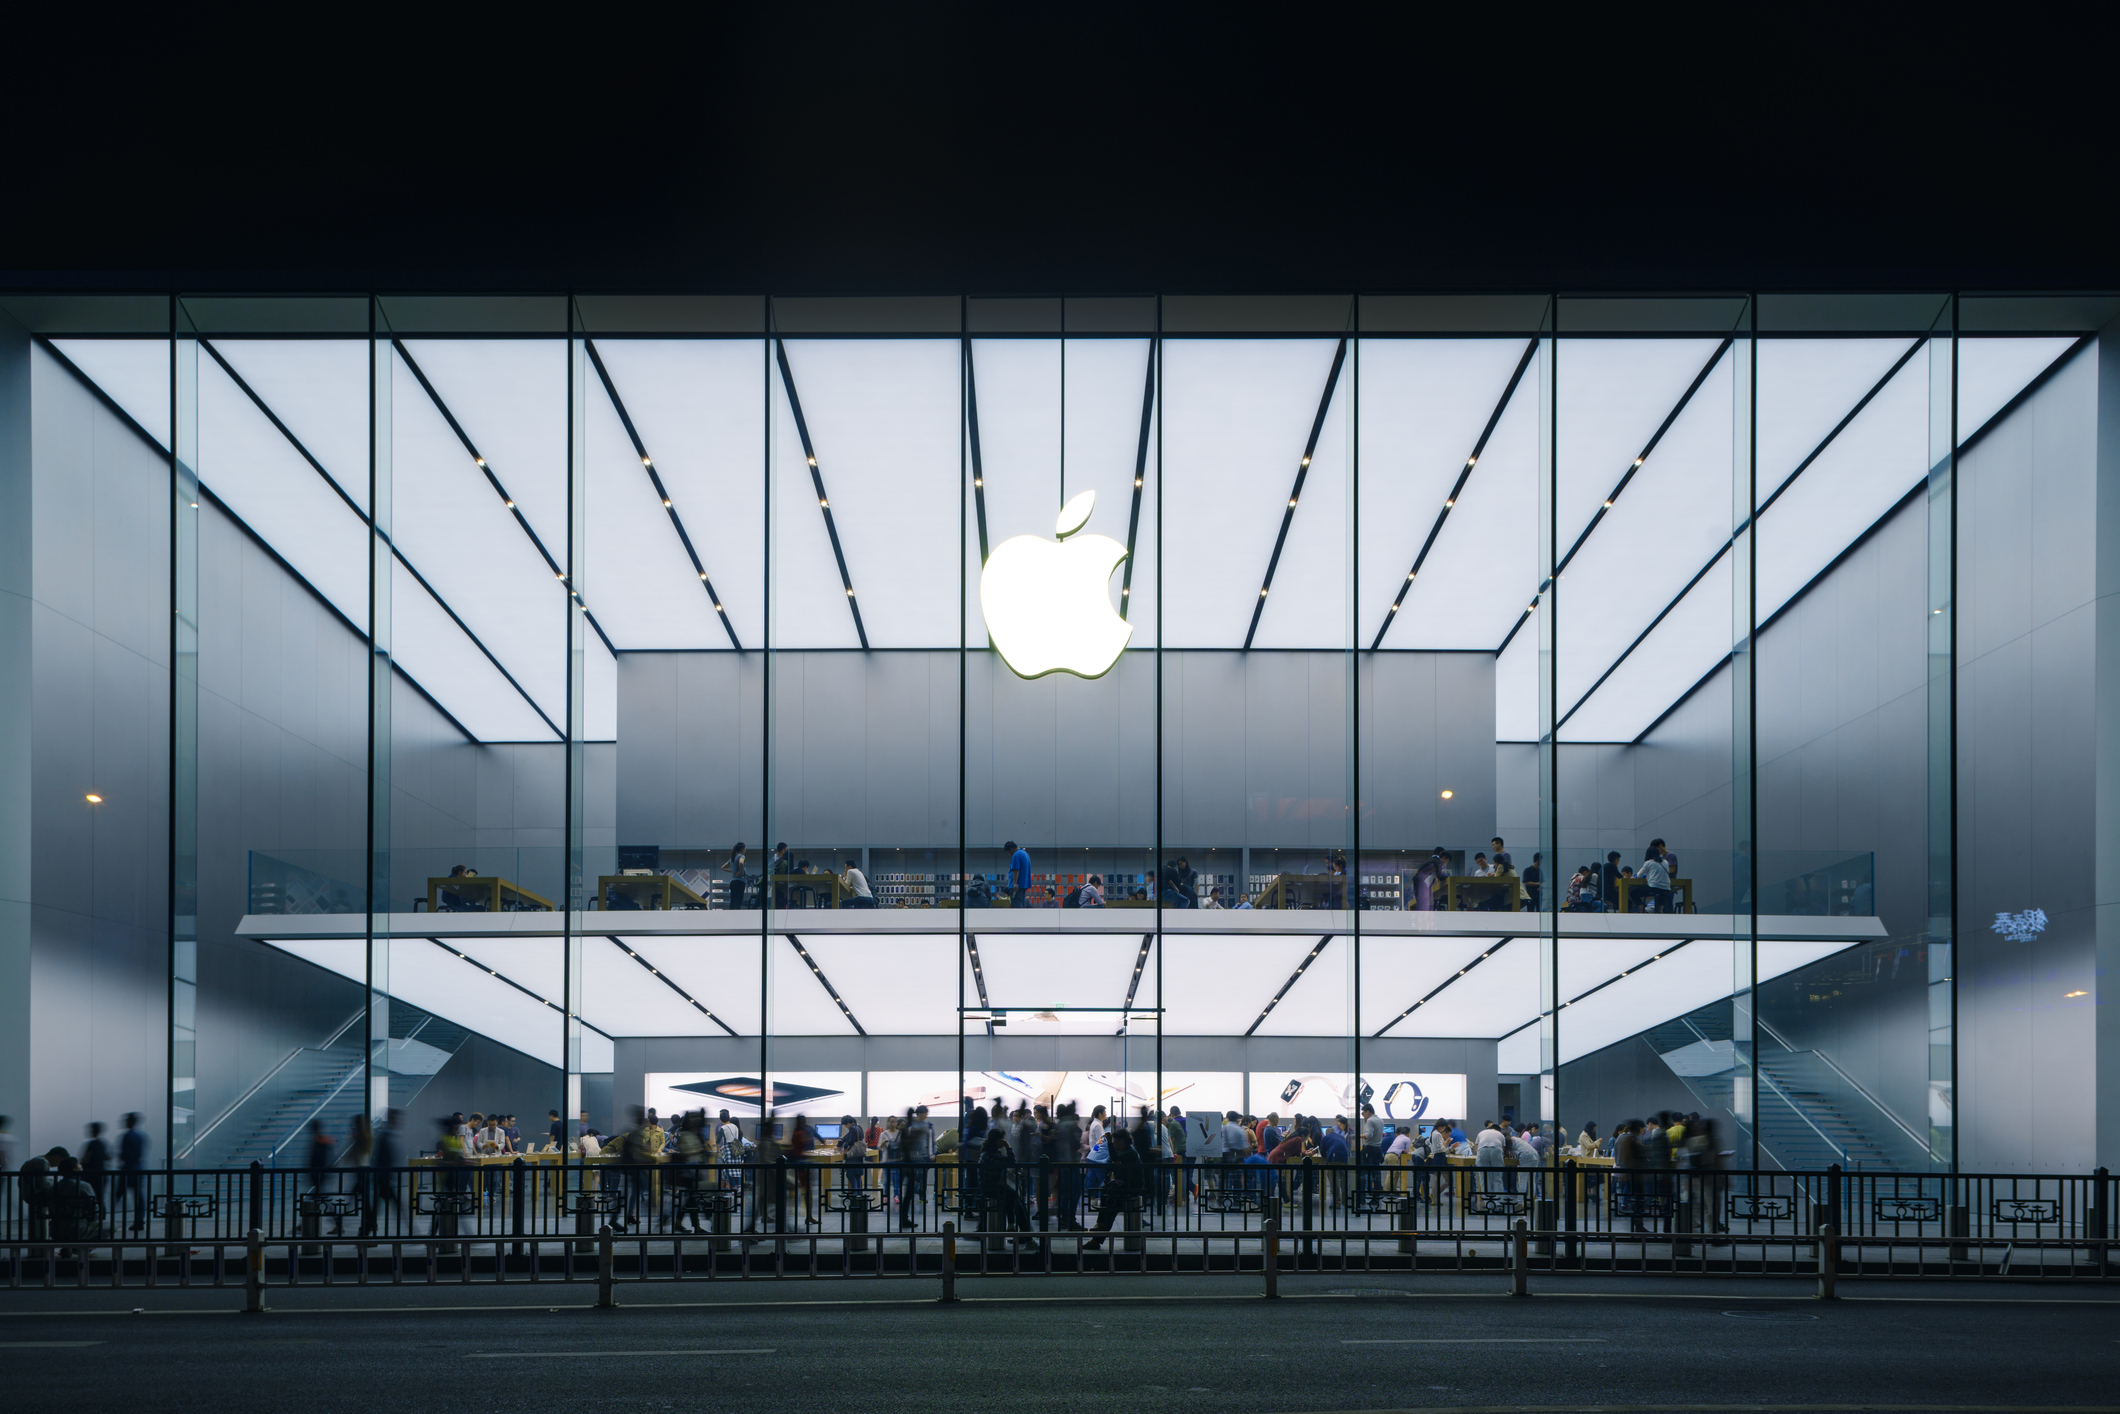 Hangzhou, China- October 19, 2015: Apple Store in China.Many people inside and outside the shop.